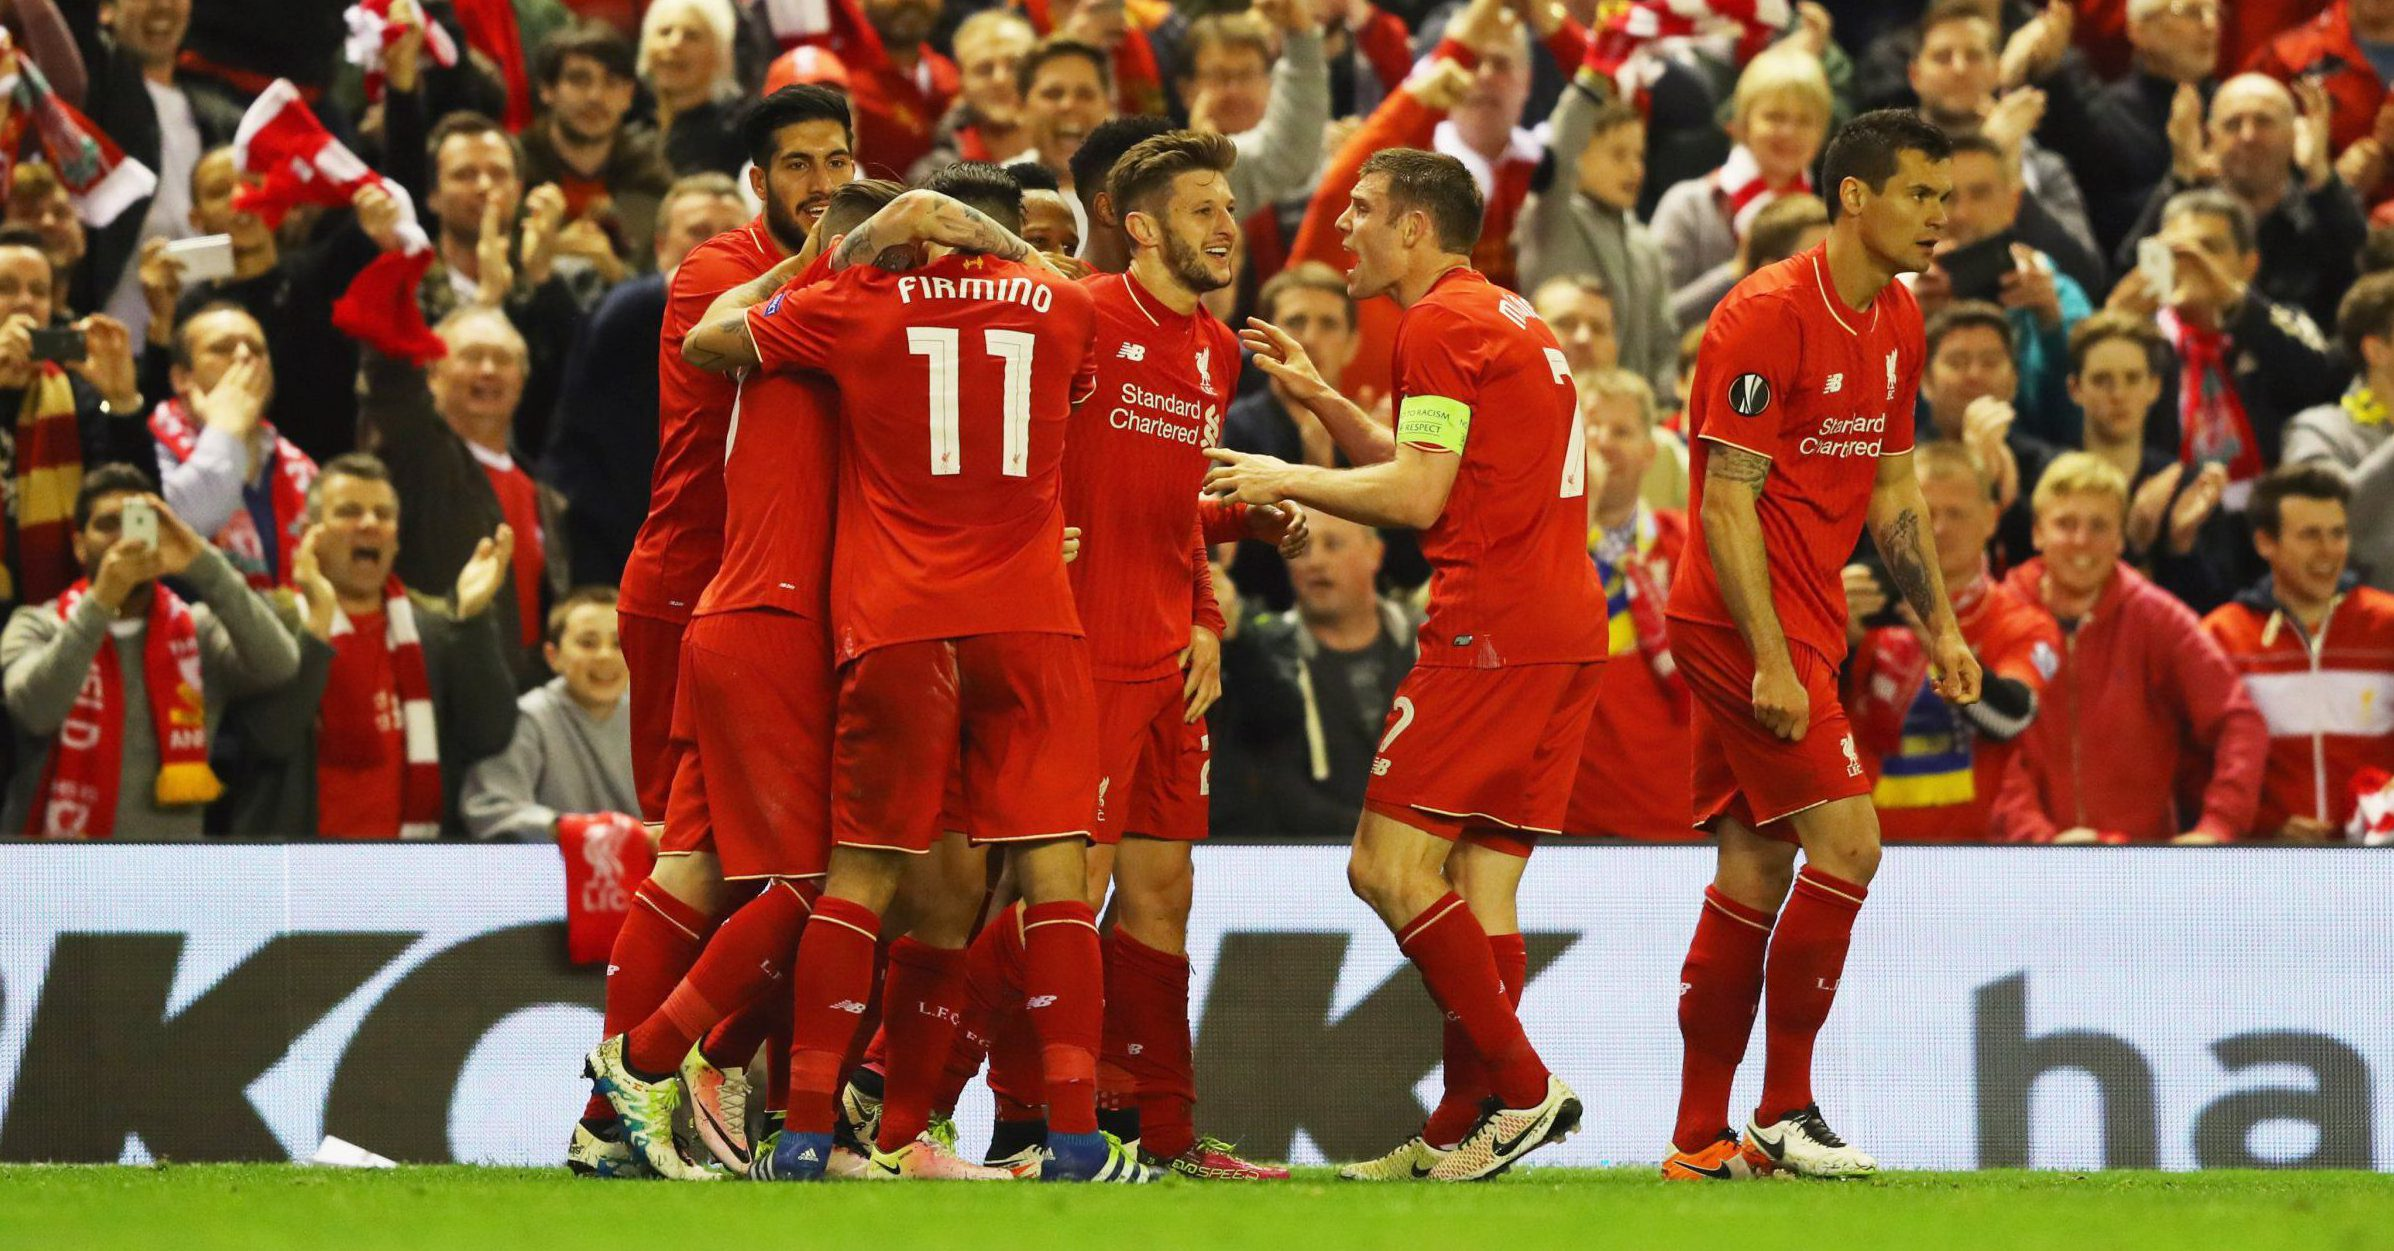 In pictures: Liverpool beat Villarreal 3-0 to book their place in the Europa League final